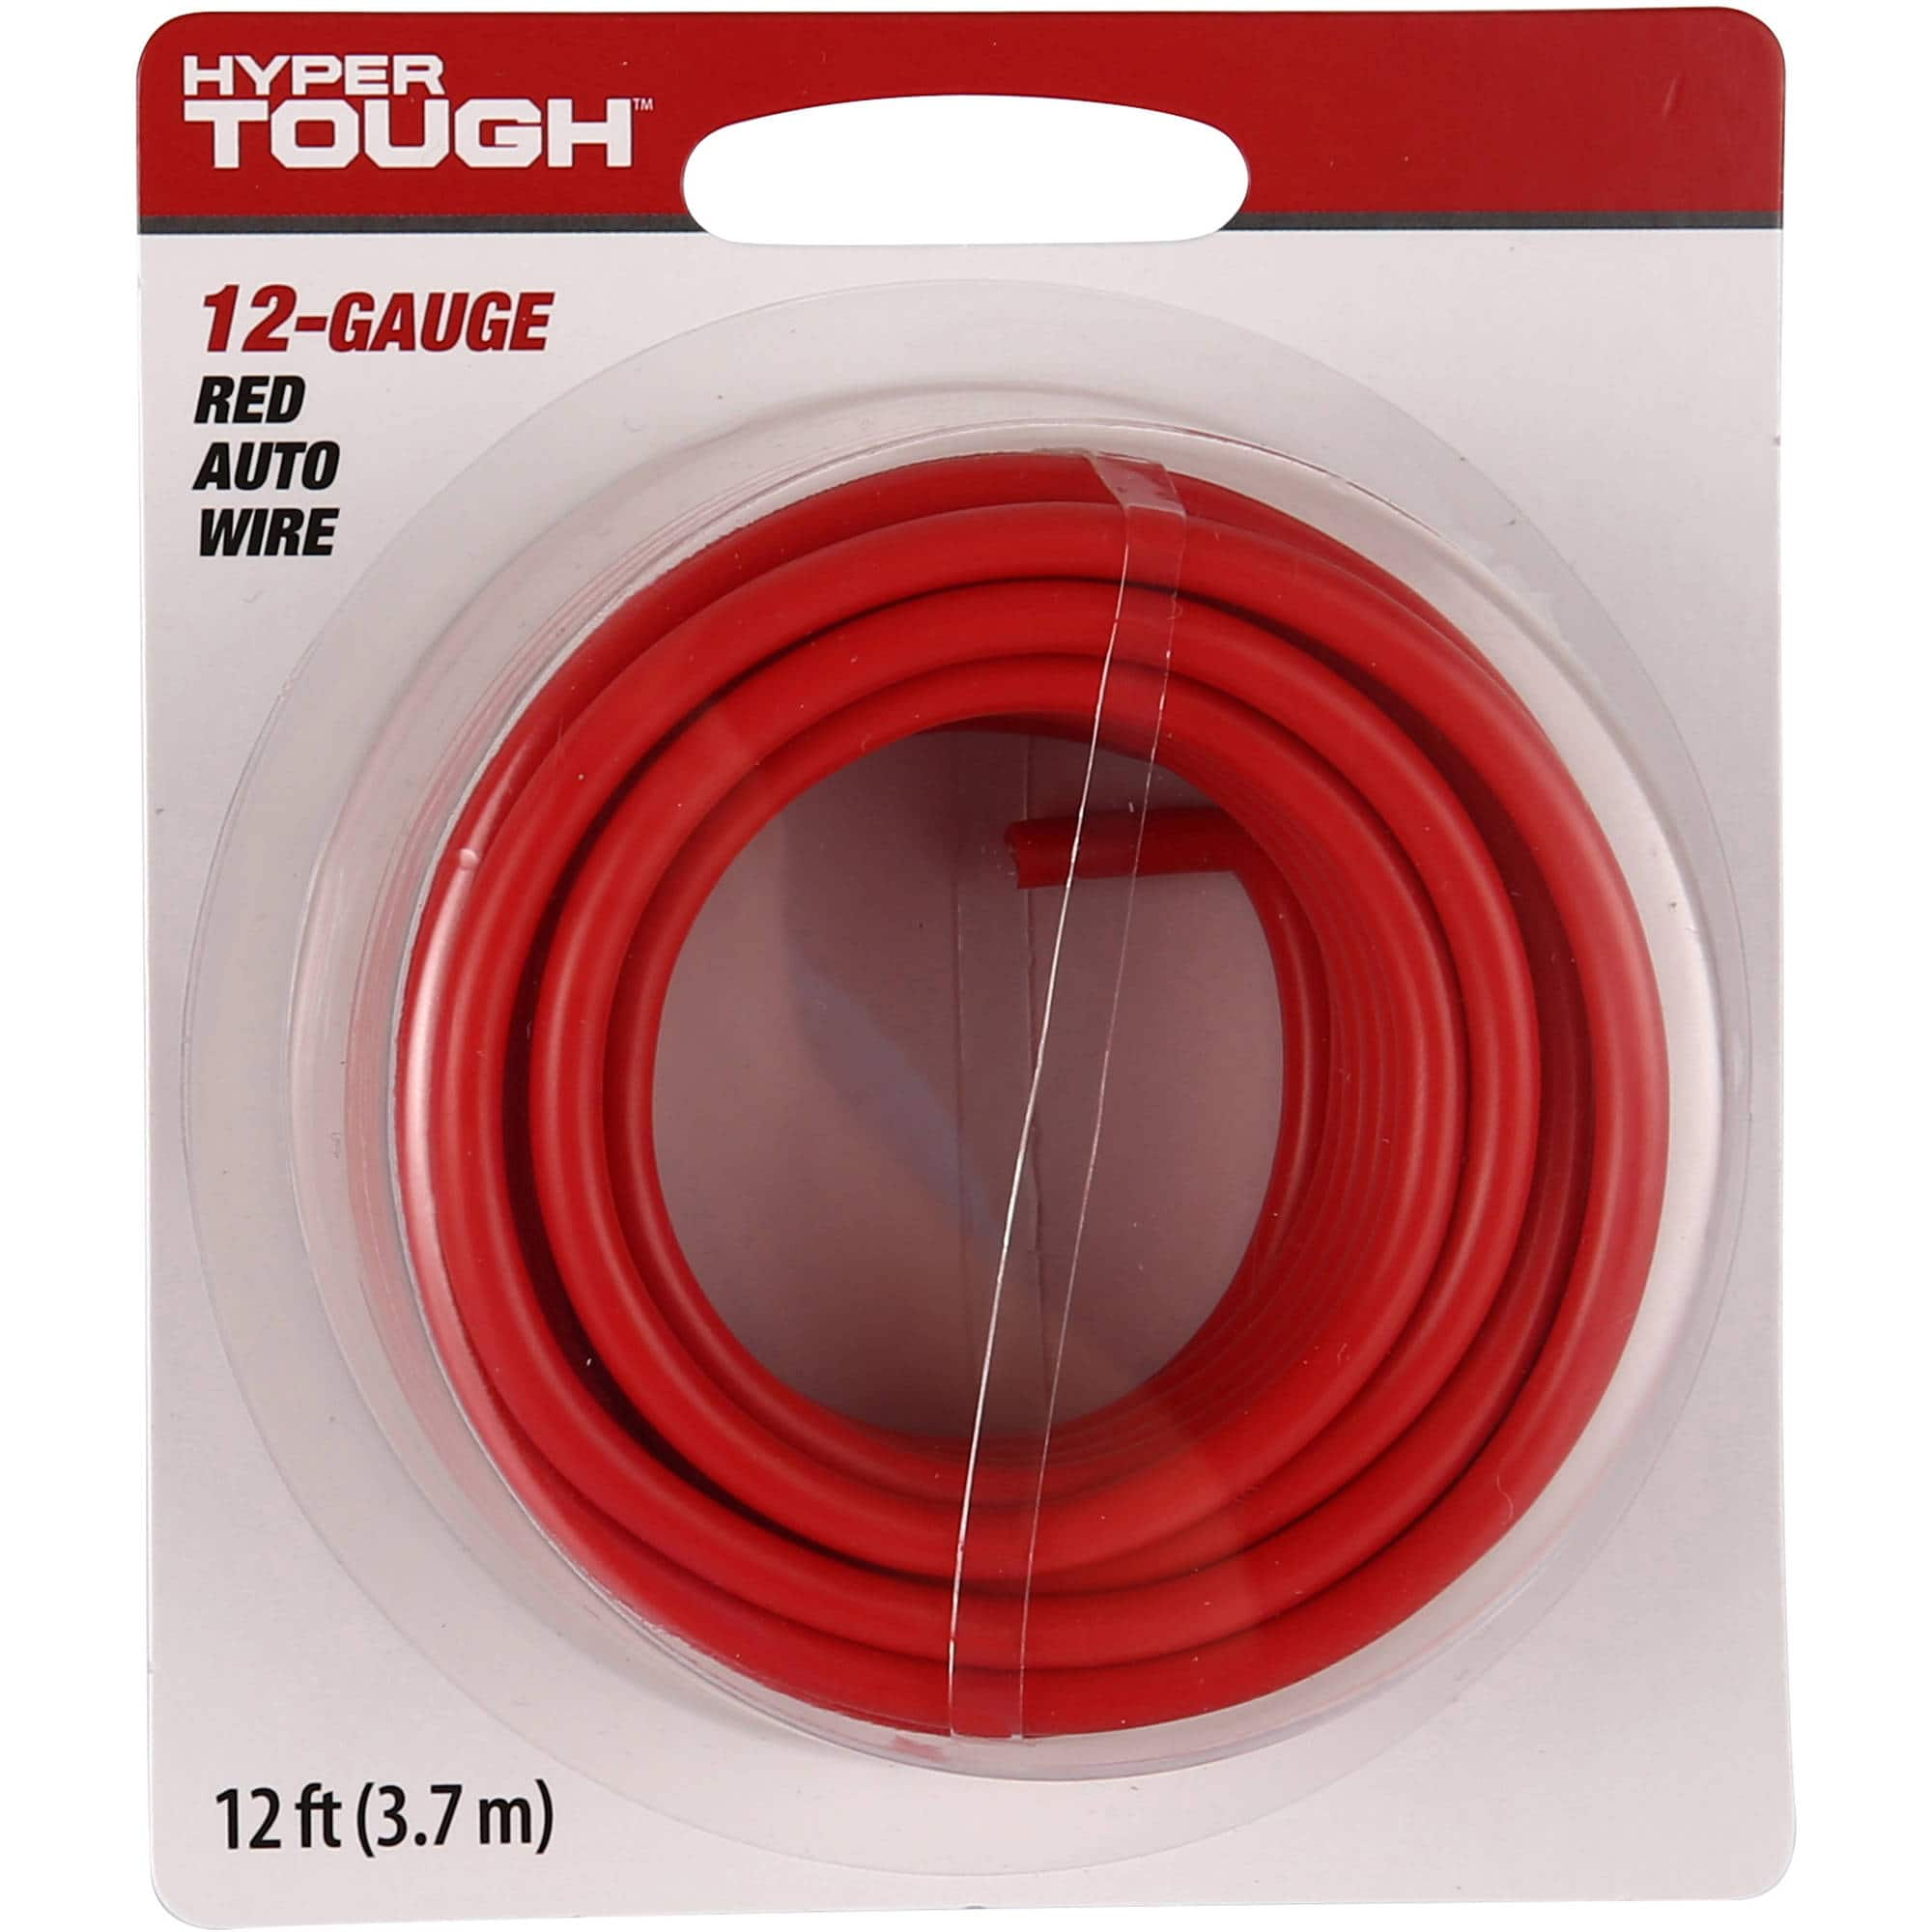 Automotive & Trailer Wiring Starting at $0.98 Walmart w/ Free In-Store Pickup or Free Ship Over $35